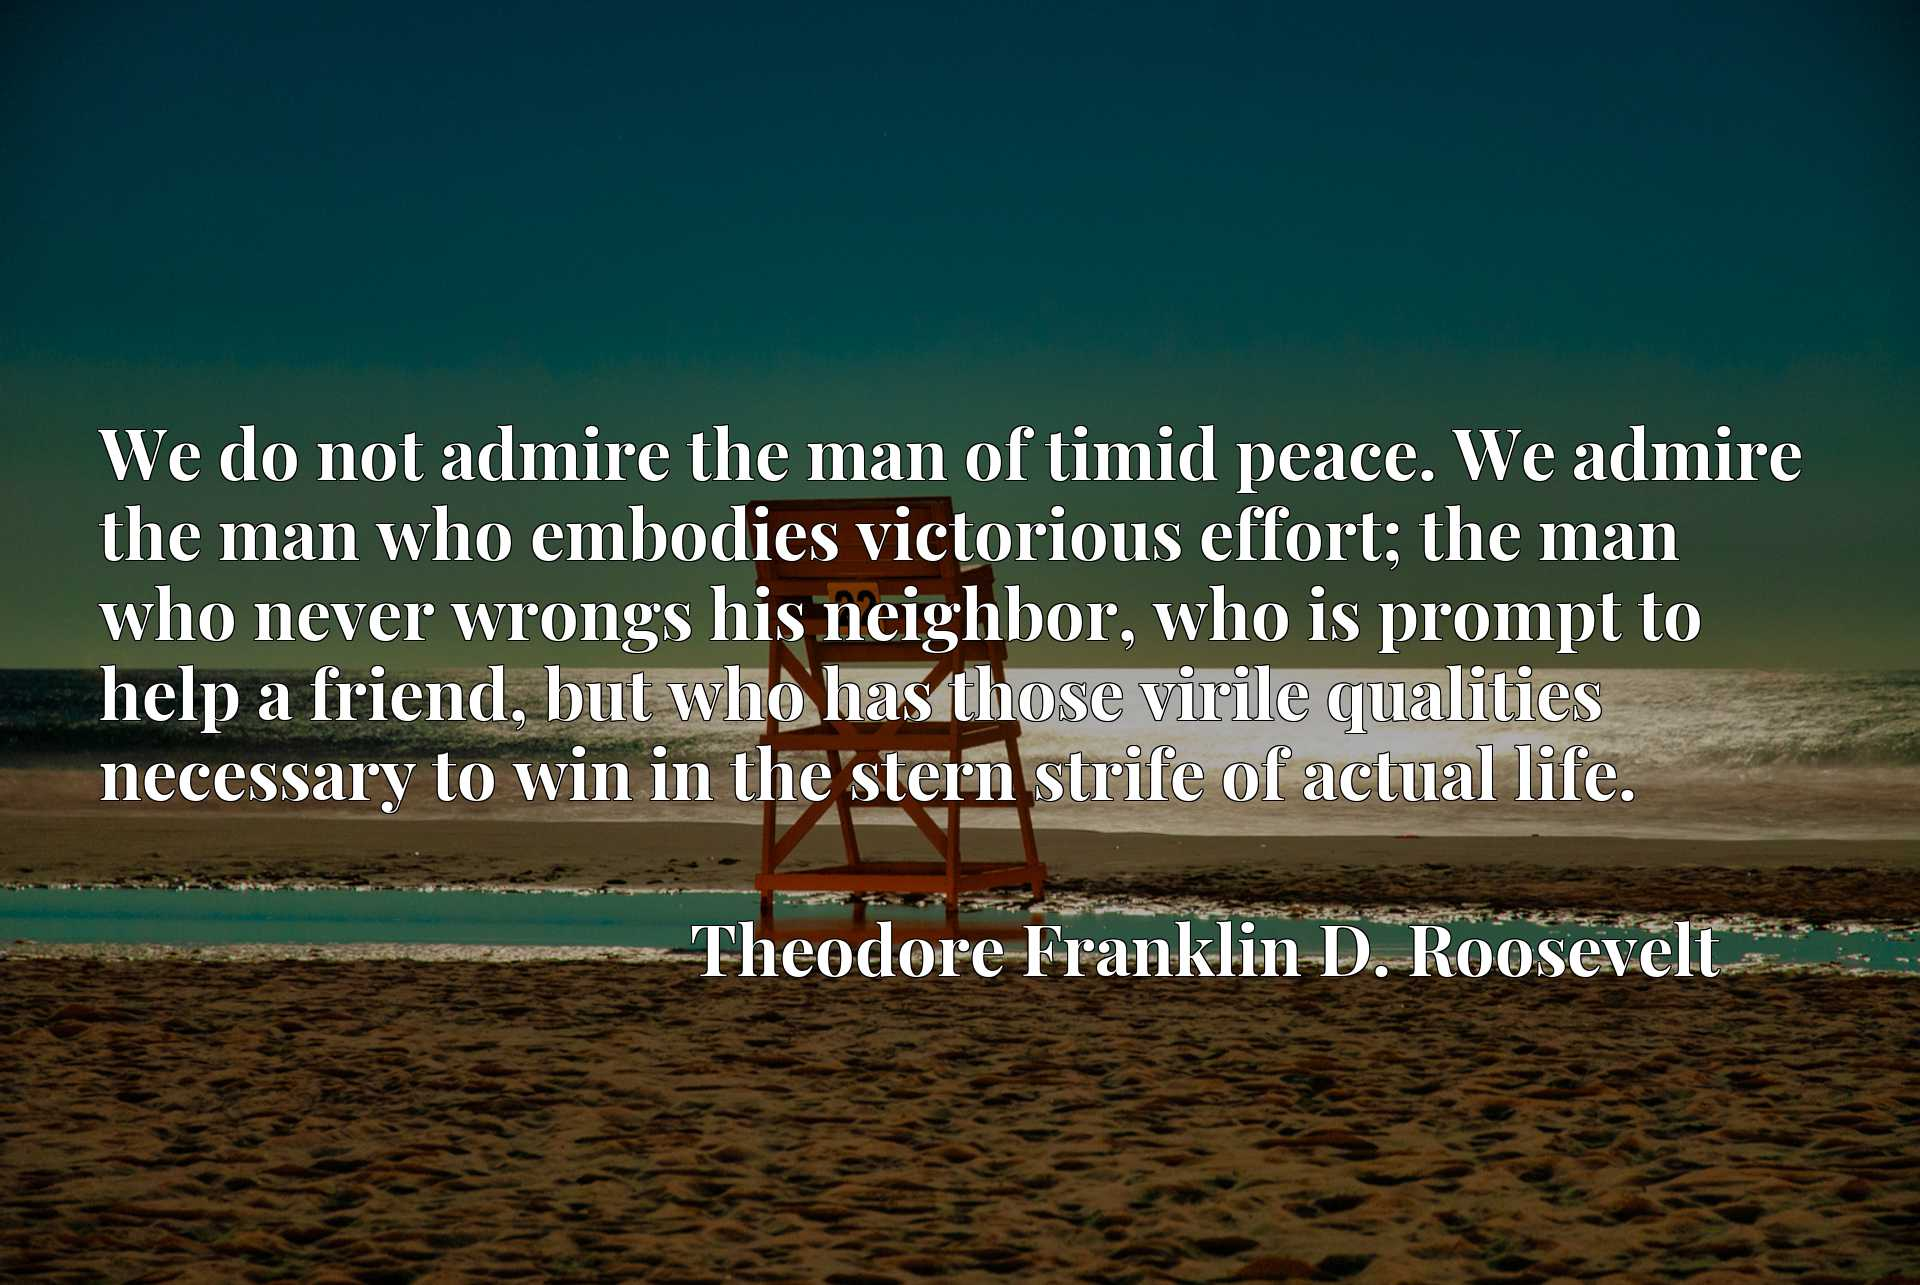 We do not admire the man of timid peace. We admire the man who embodies victorious effort; the man who never wrongs his neighbor, who is prompt to help a friend, but who has those virile qualities necessary to win in the stern strife of actual life.